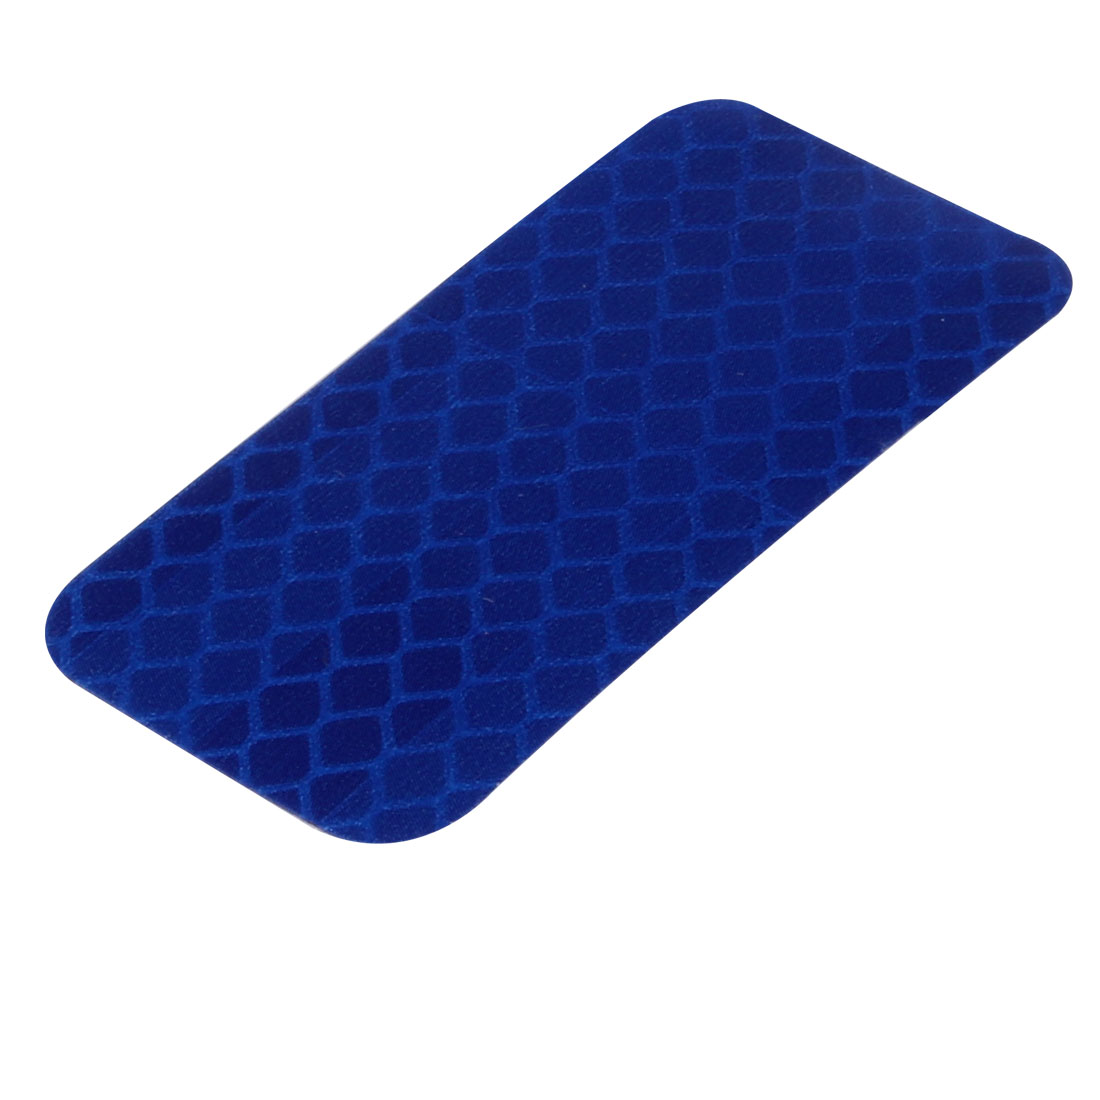 Honeycomb Reflective Warning Tape Film Sticker Blue 30mm x 60mm